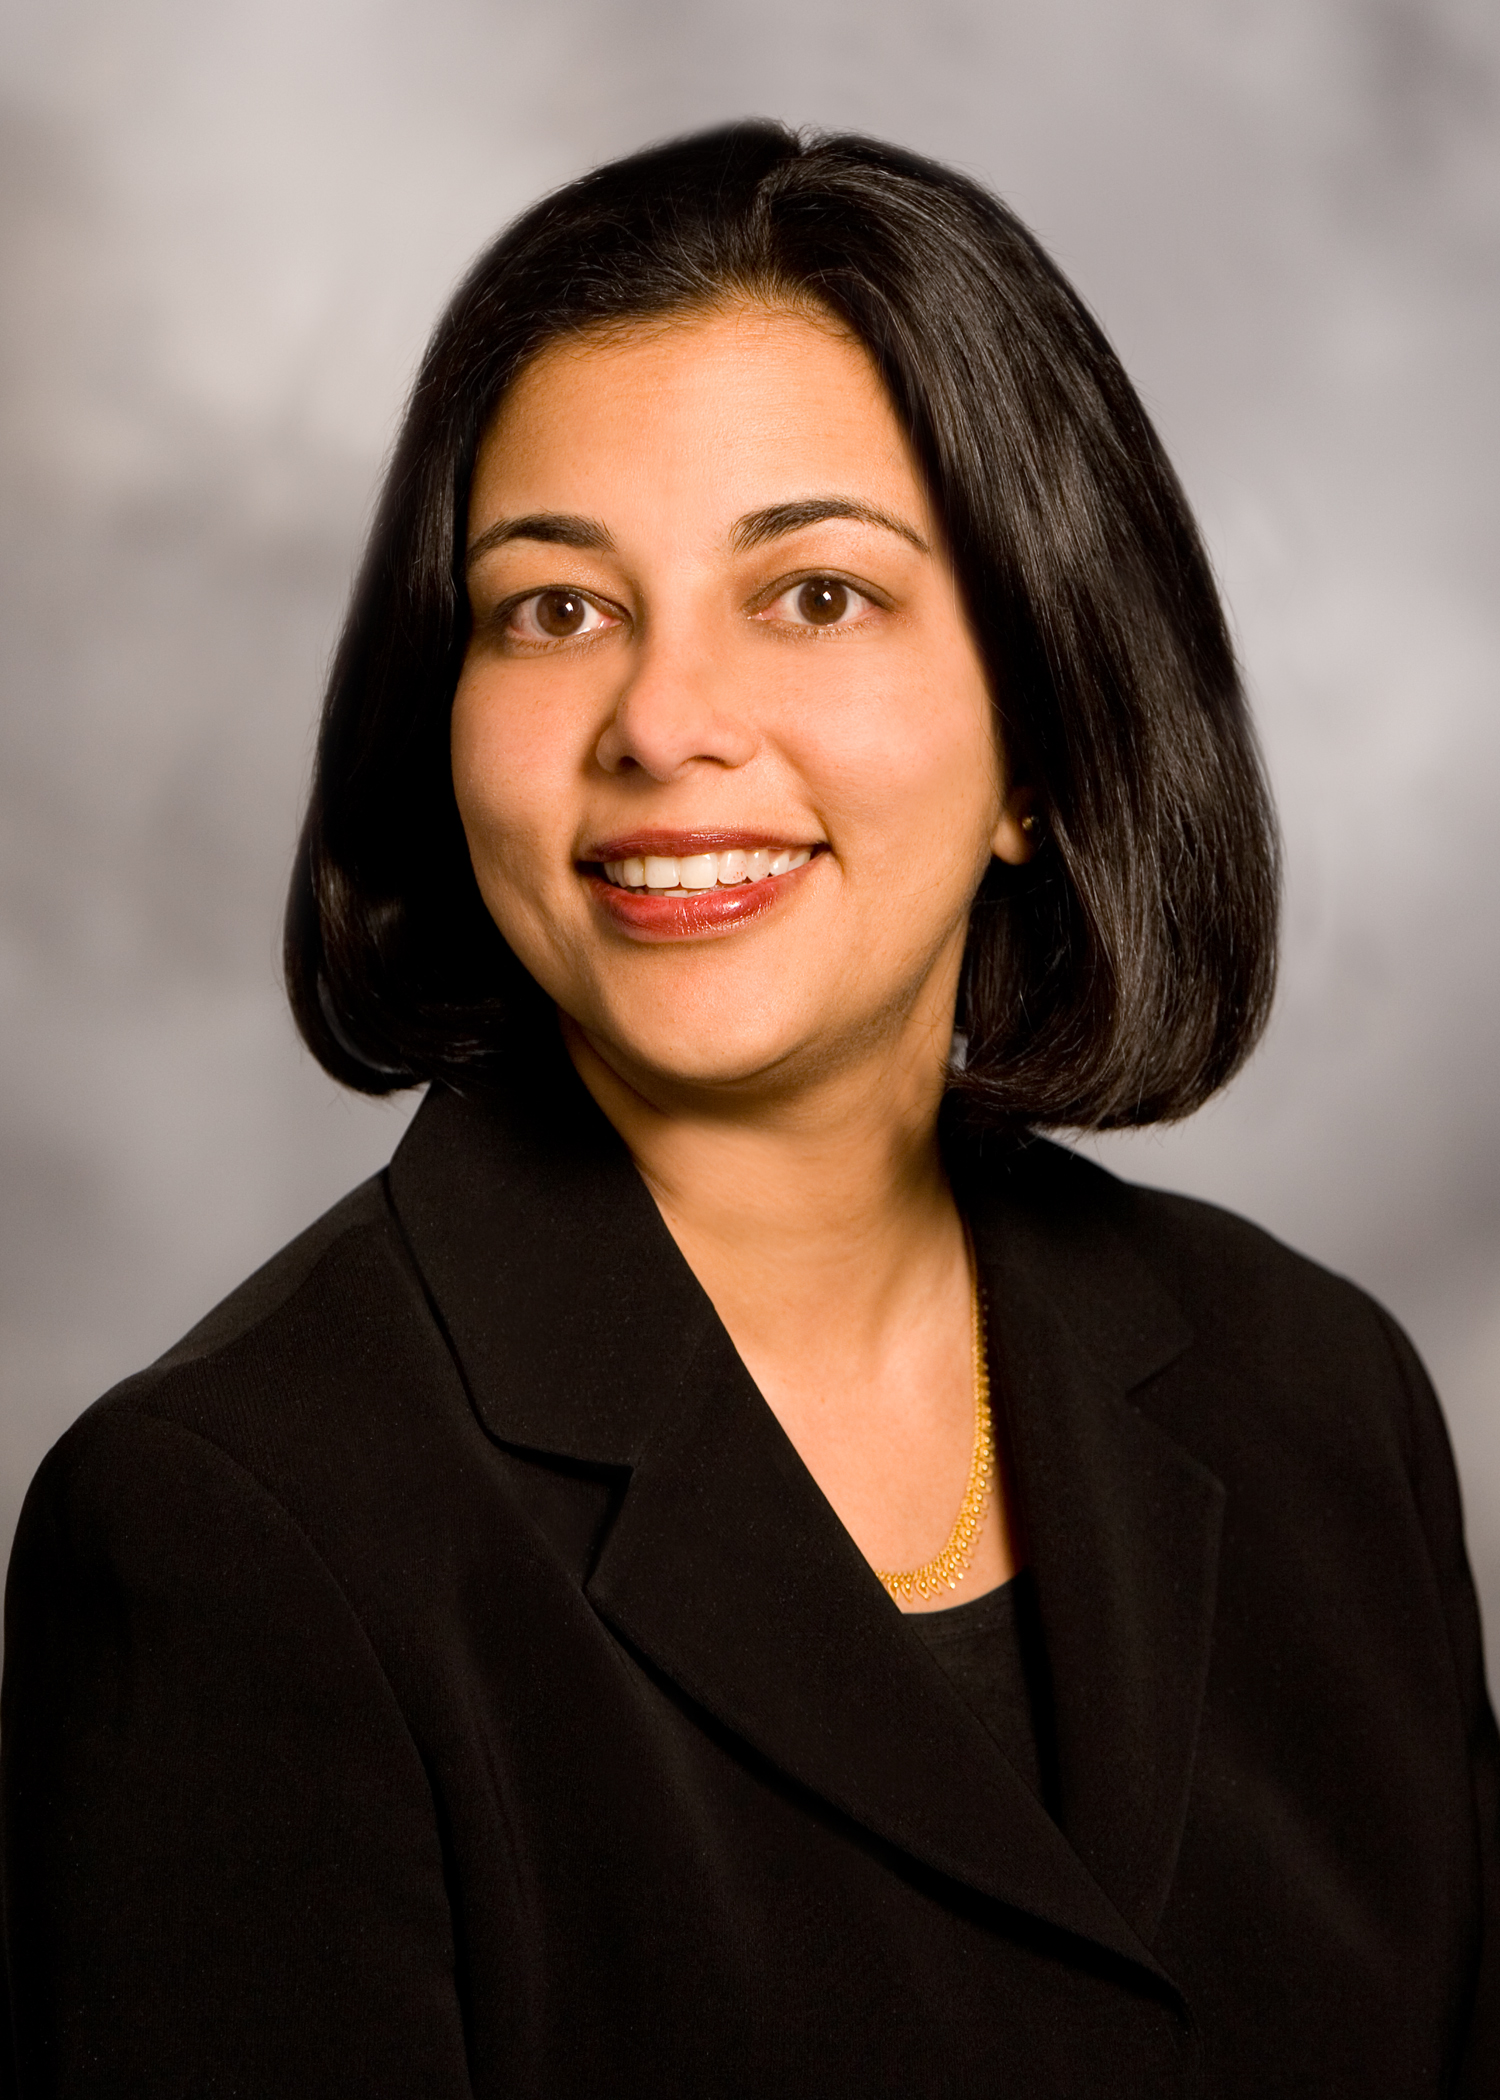 Mala Anand, senior vice president of the Cisco Data & Analytics Platforms Group